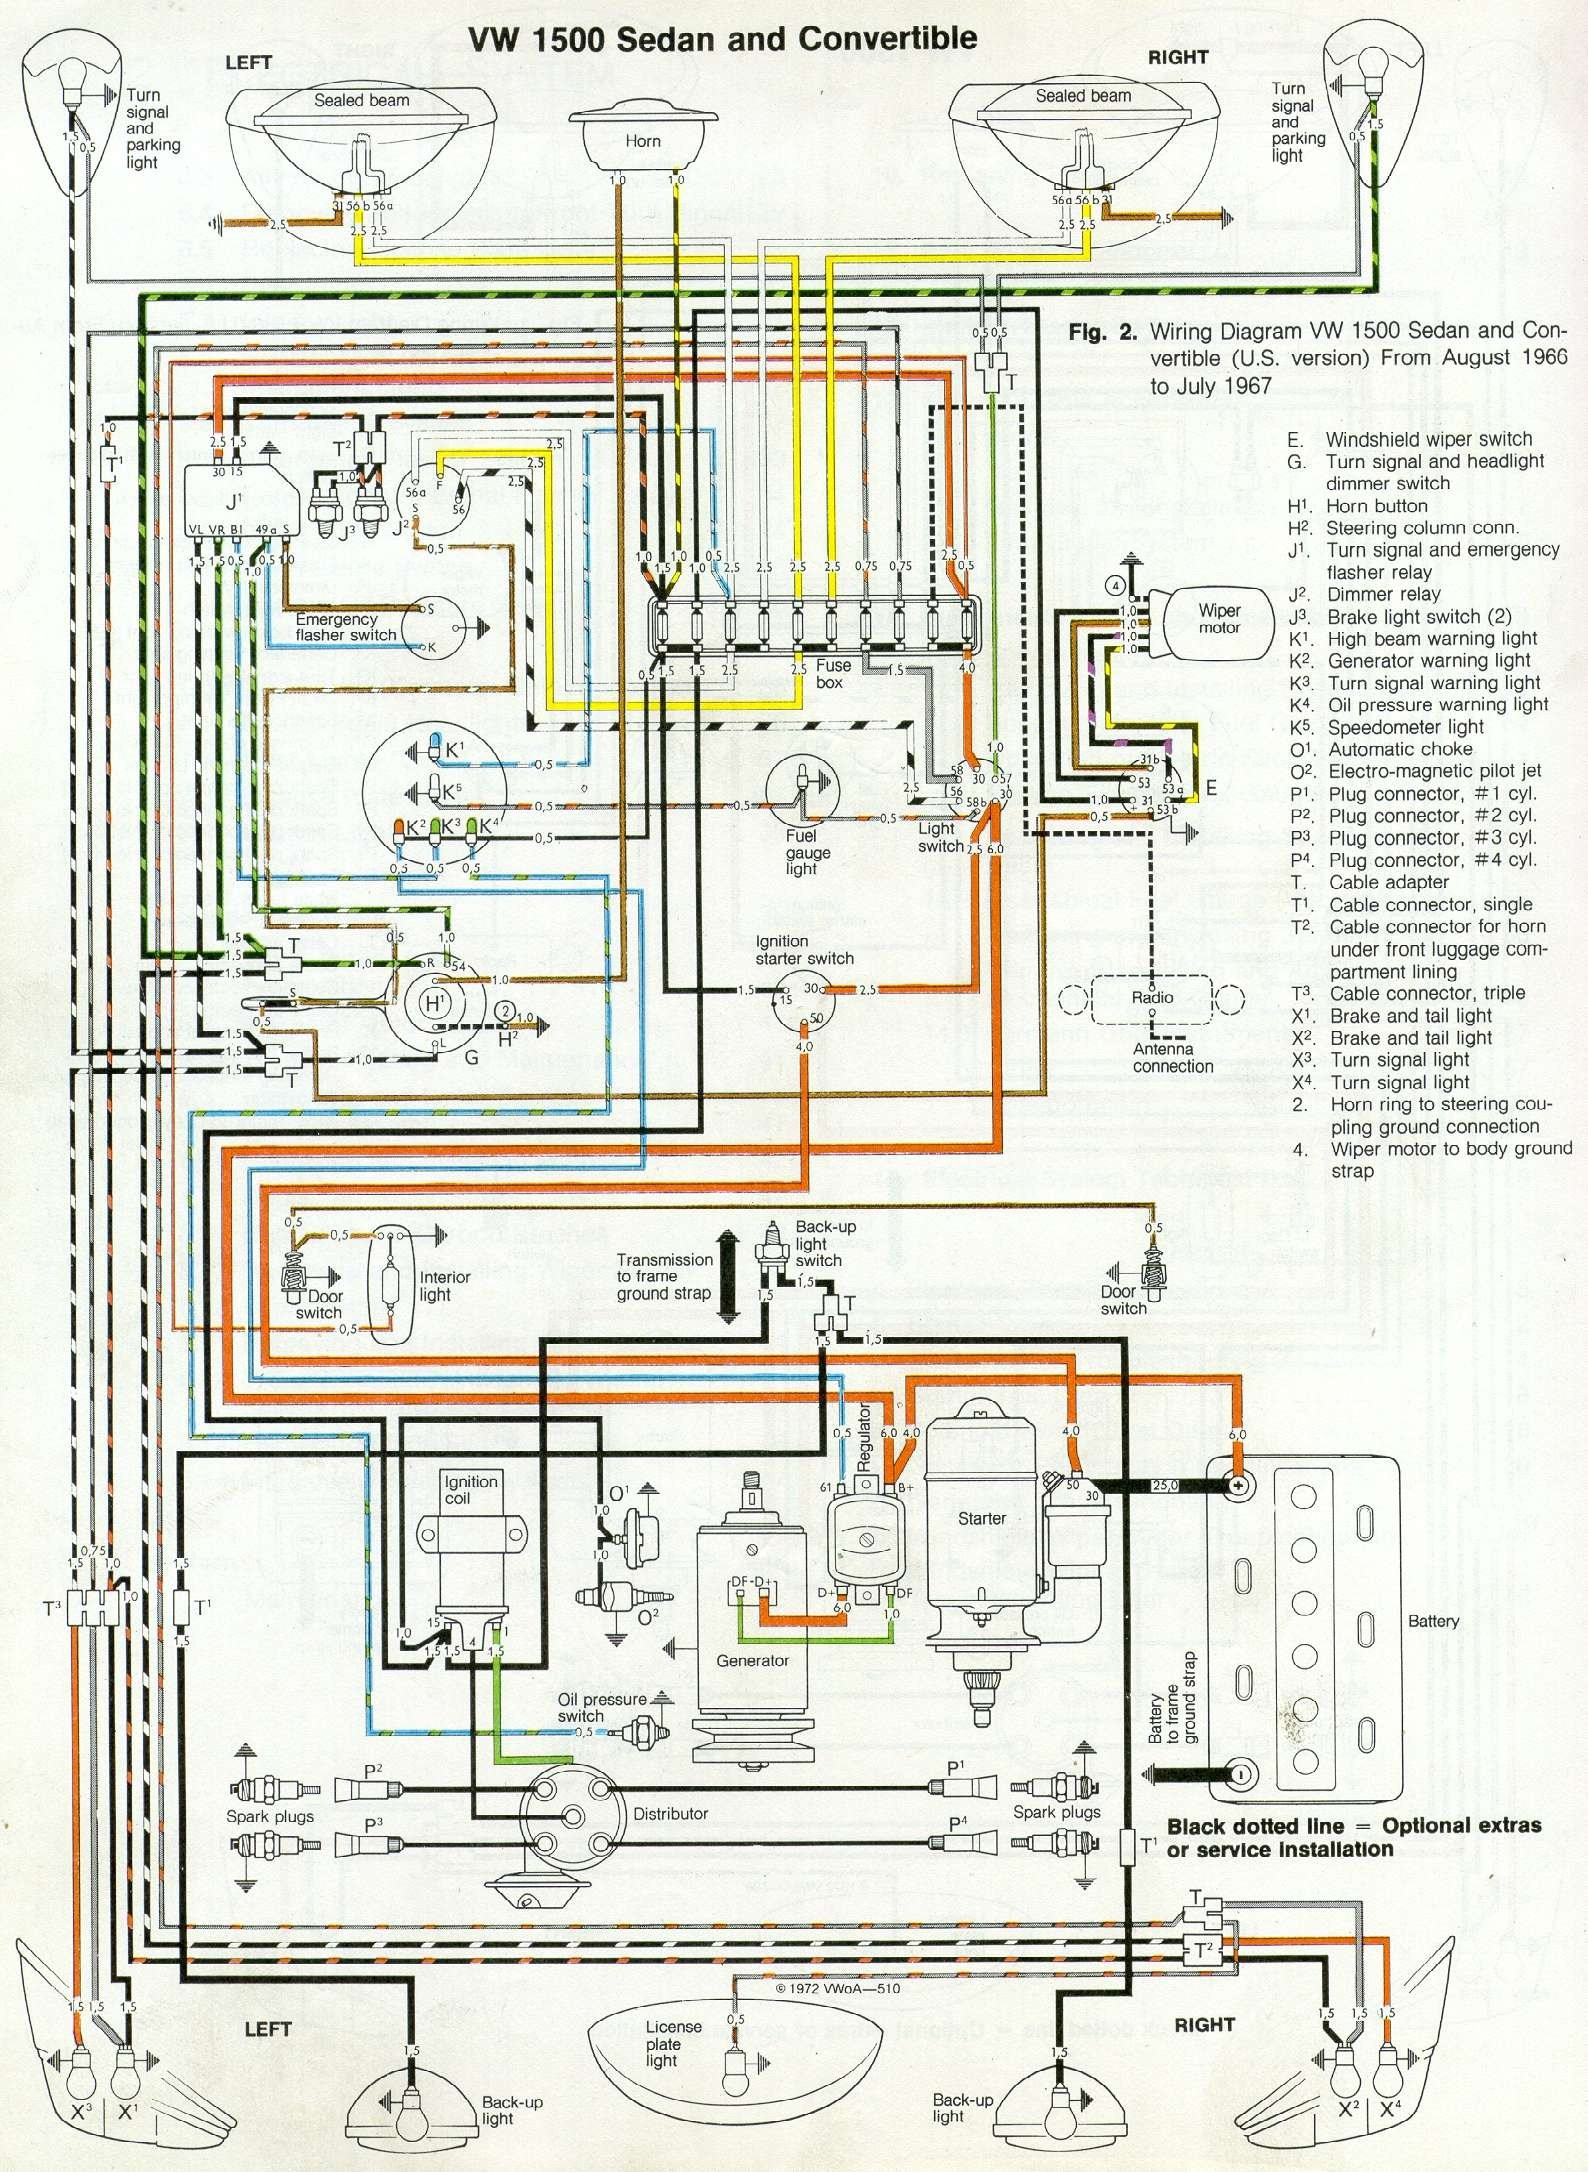 VW Beetle Wiring Digram 67 beetle wiring diagram u s version 1967 vw beetle new beetle wiring diagram at bayanpartner.co